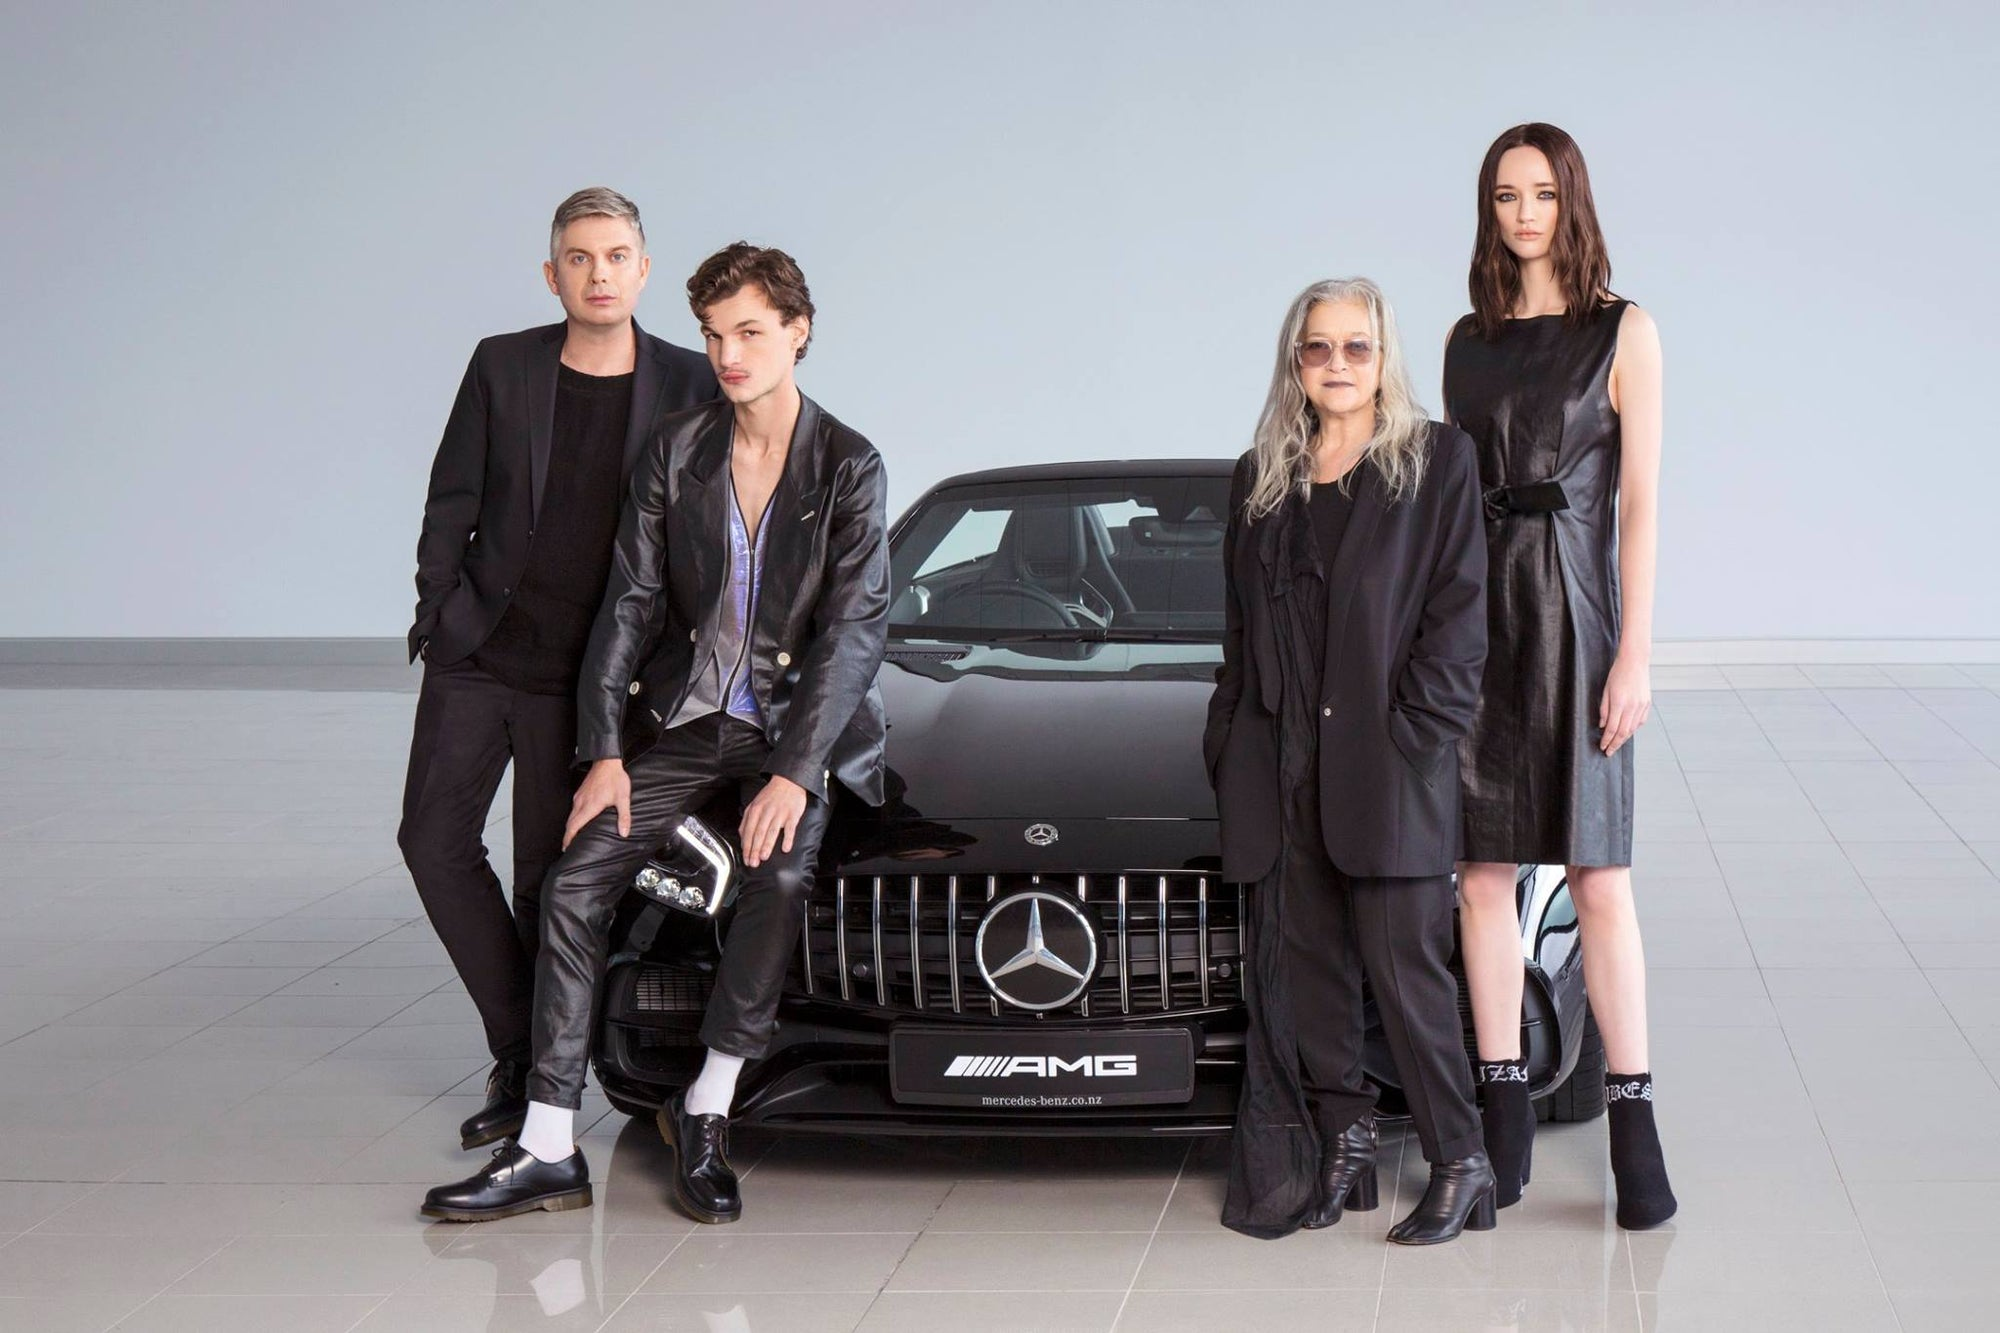 Mercedes-Benz Presents Zambesi AW 2018